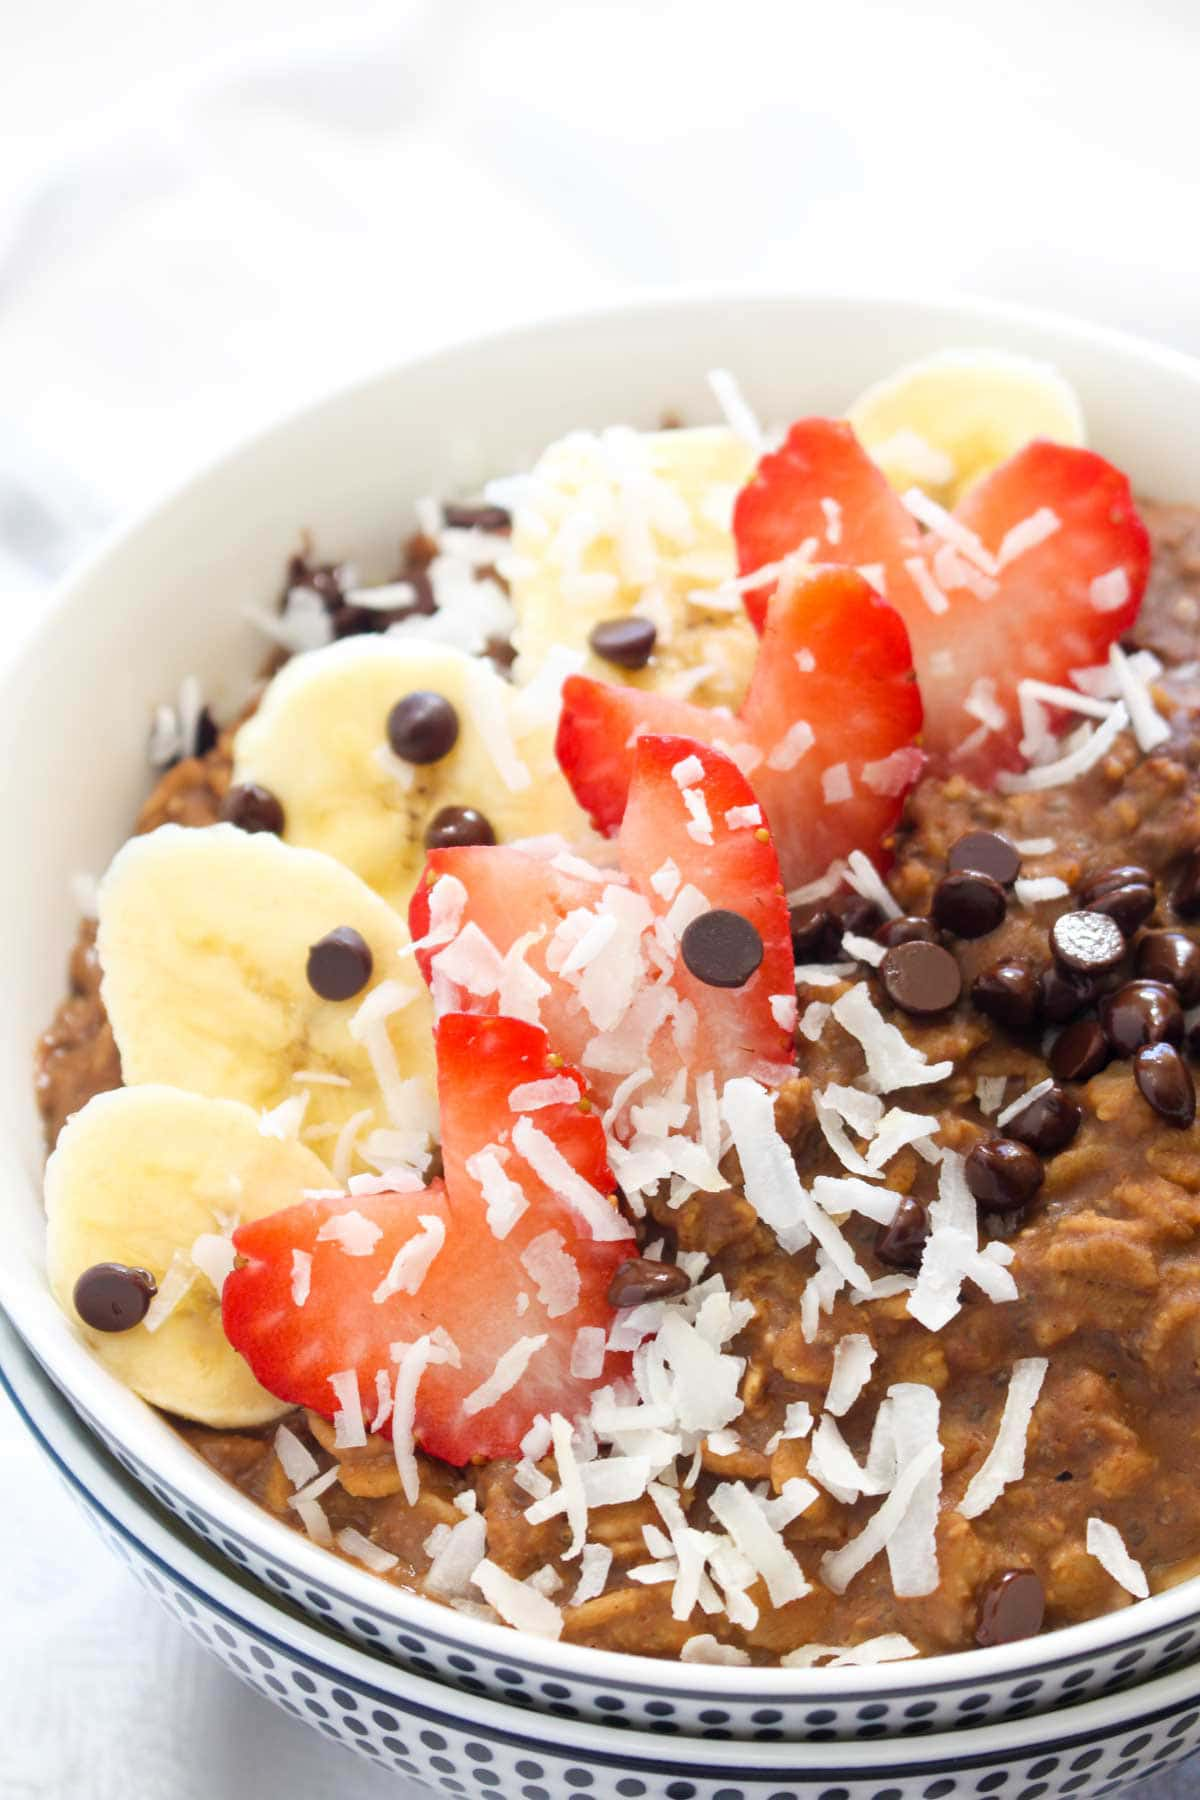 This Chocolate Protein Oatmeal is like eating dessert for breakfast. So rich, creamy, and decadent but secretly healthy! This easy recipe requires just 5 ingredients and takes 10 minutes to make. | CatchingSeeds.com